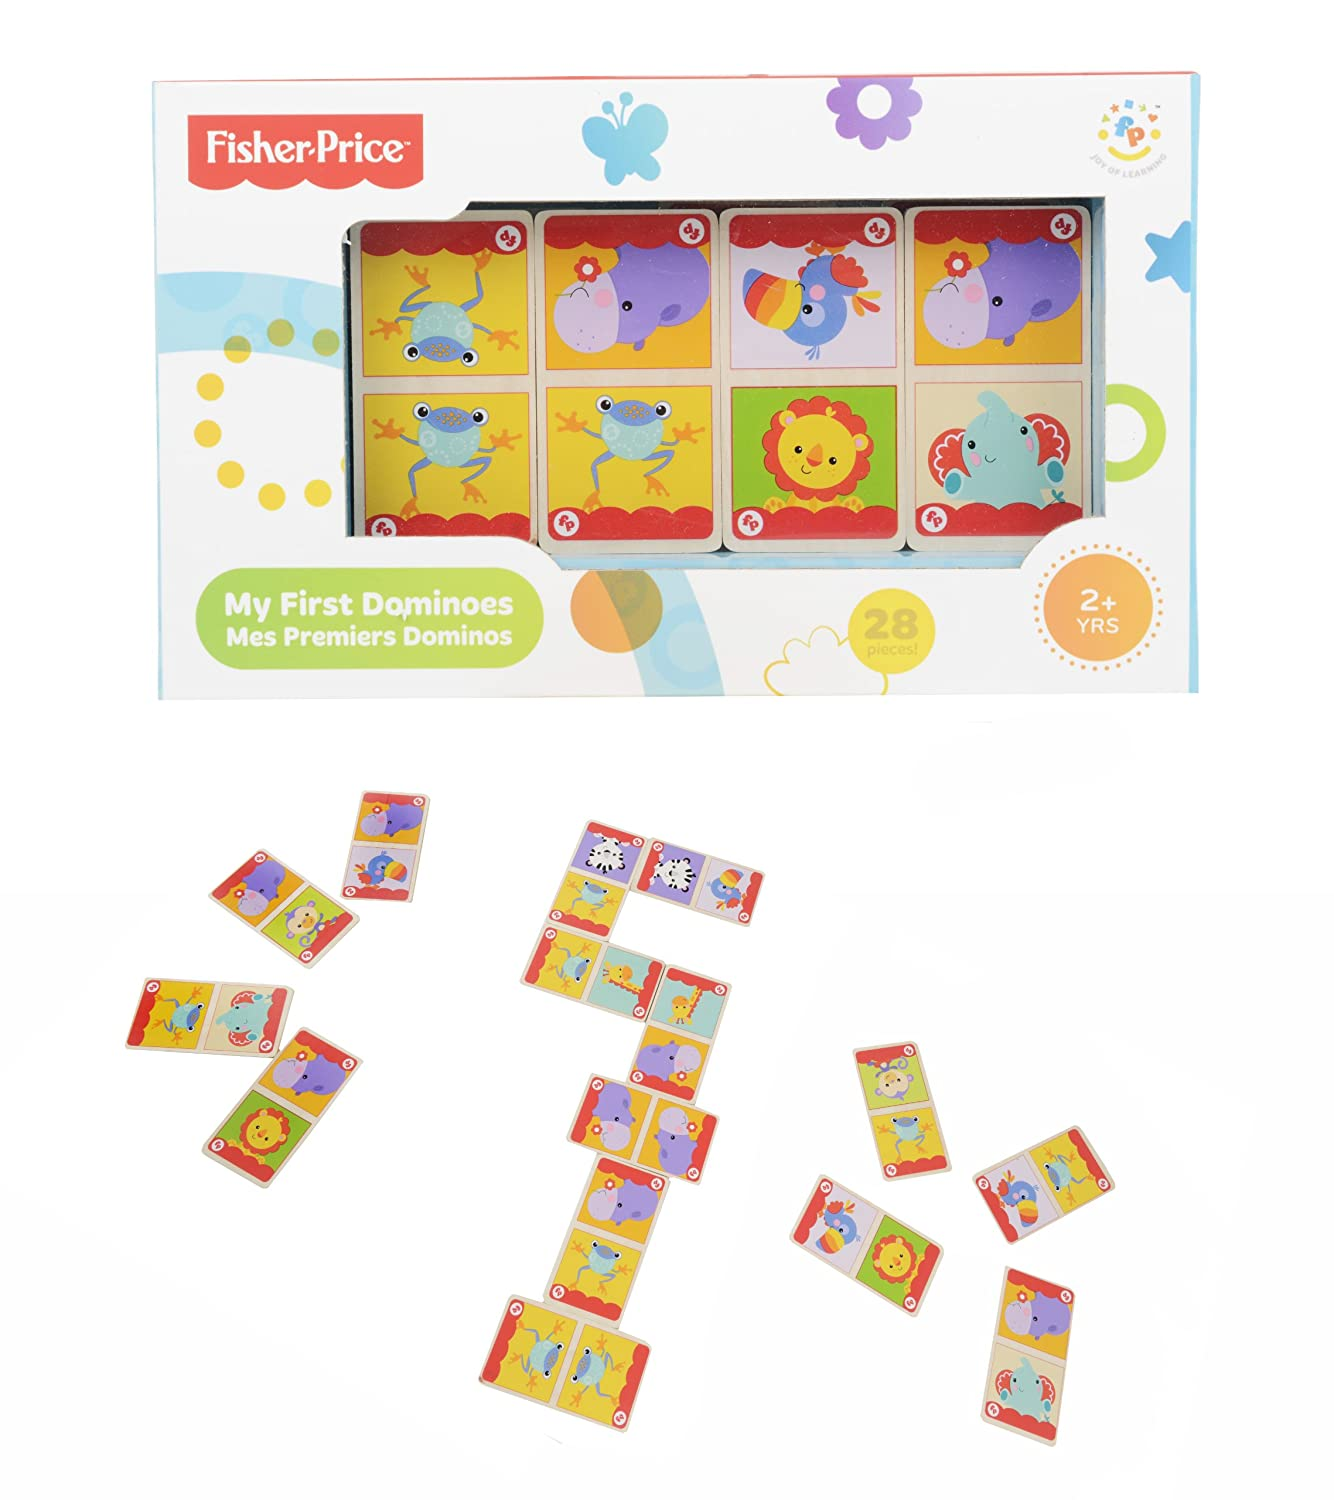 Fisher-Price Dominoes: Amazon.co.uk: Toys & Games